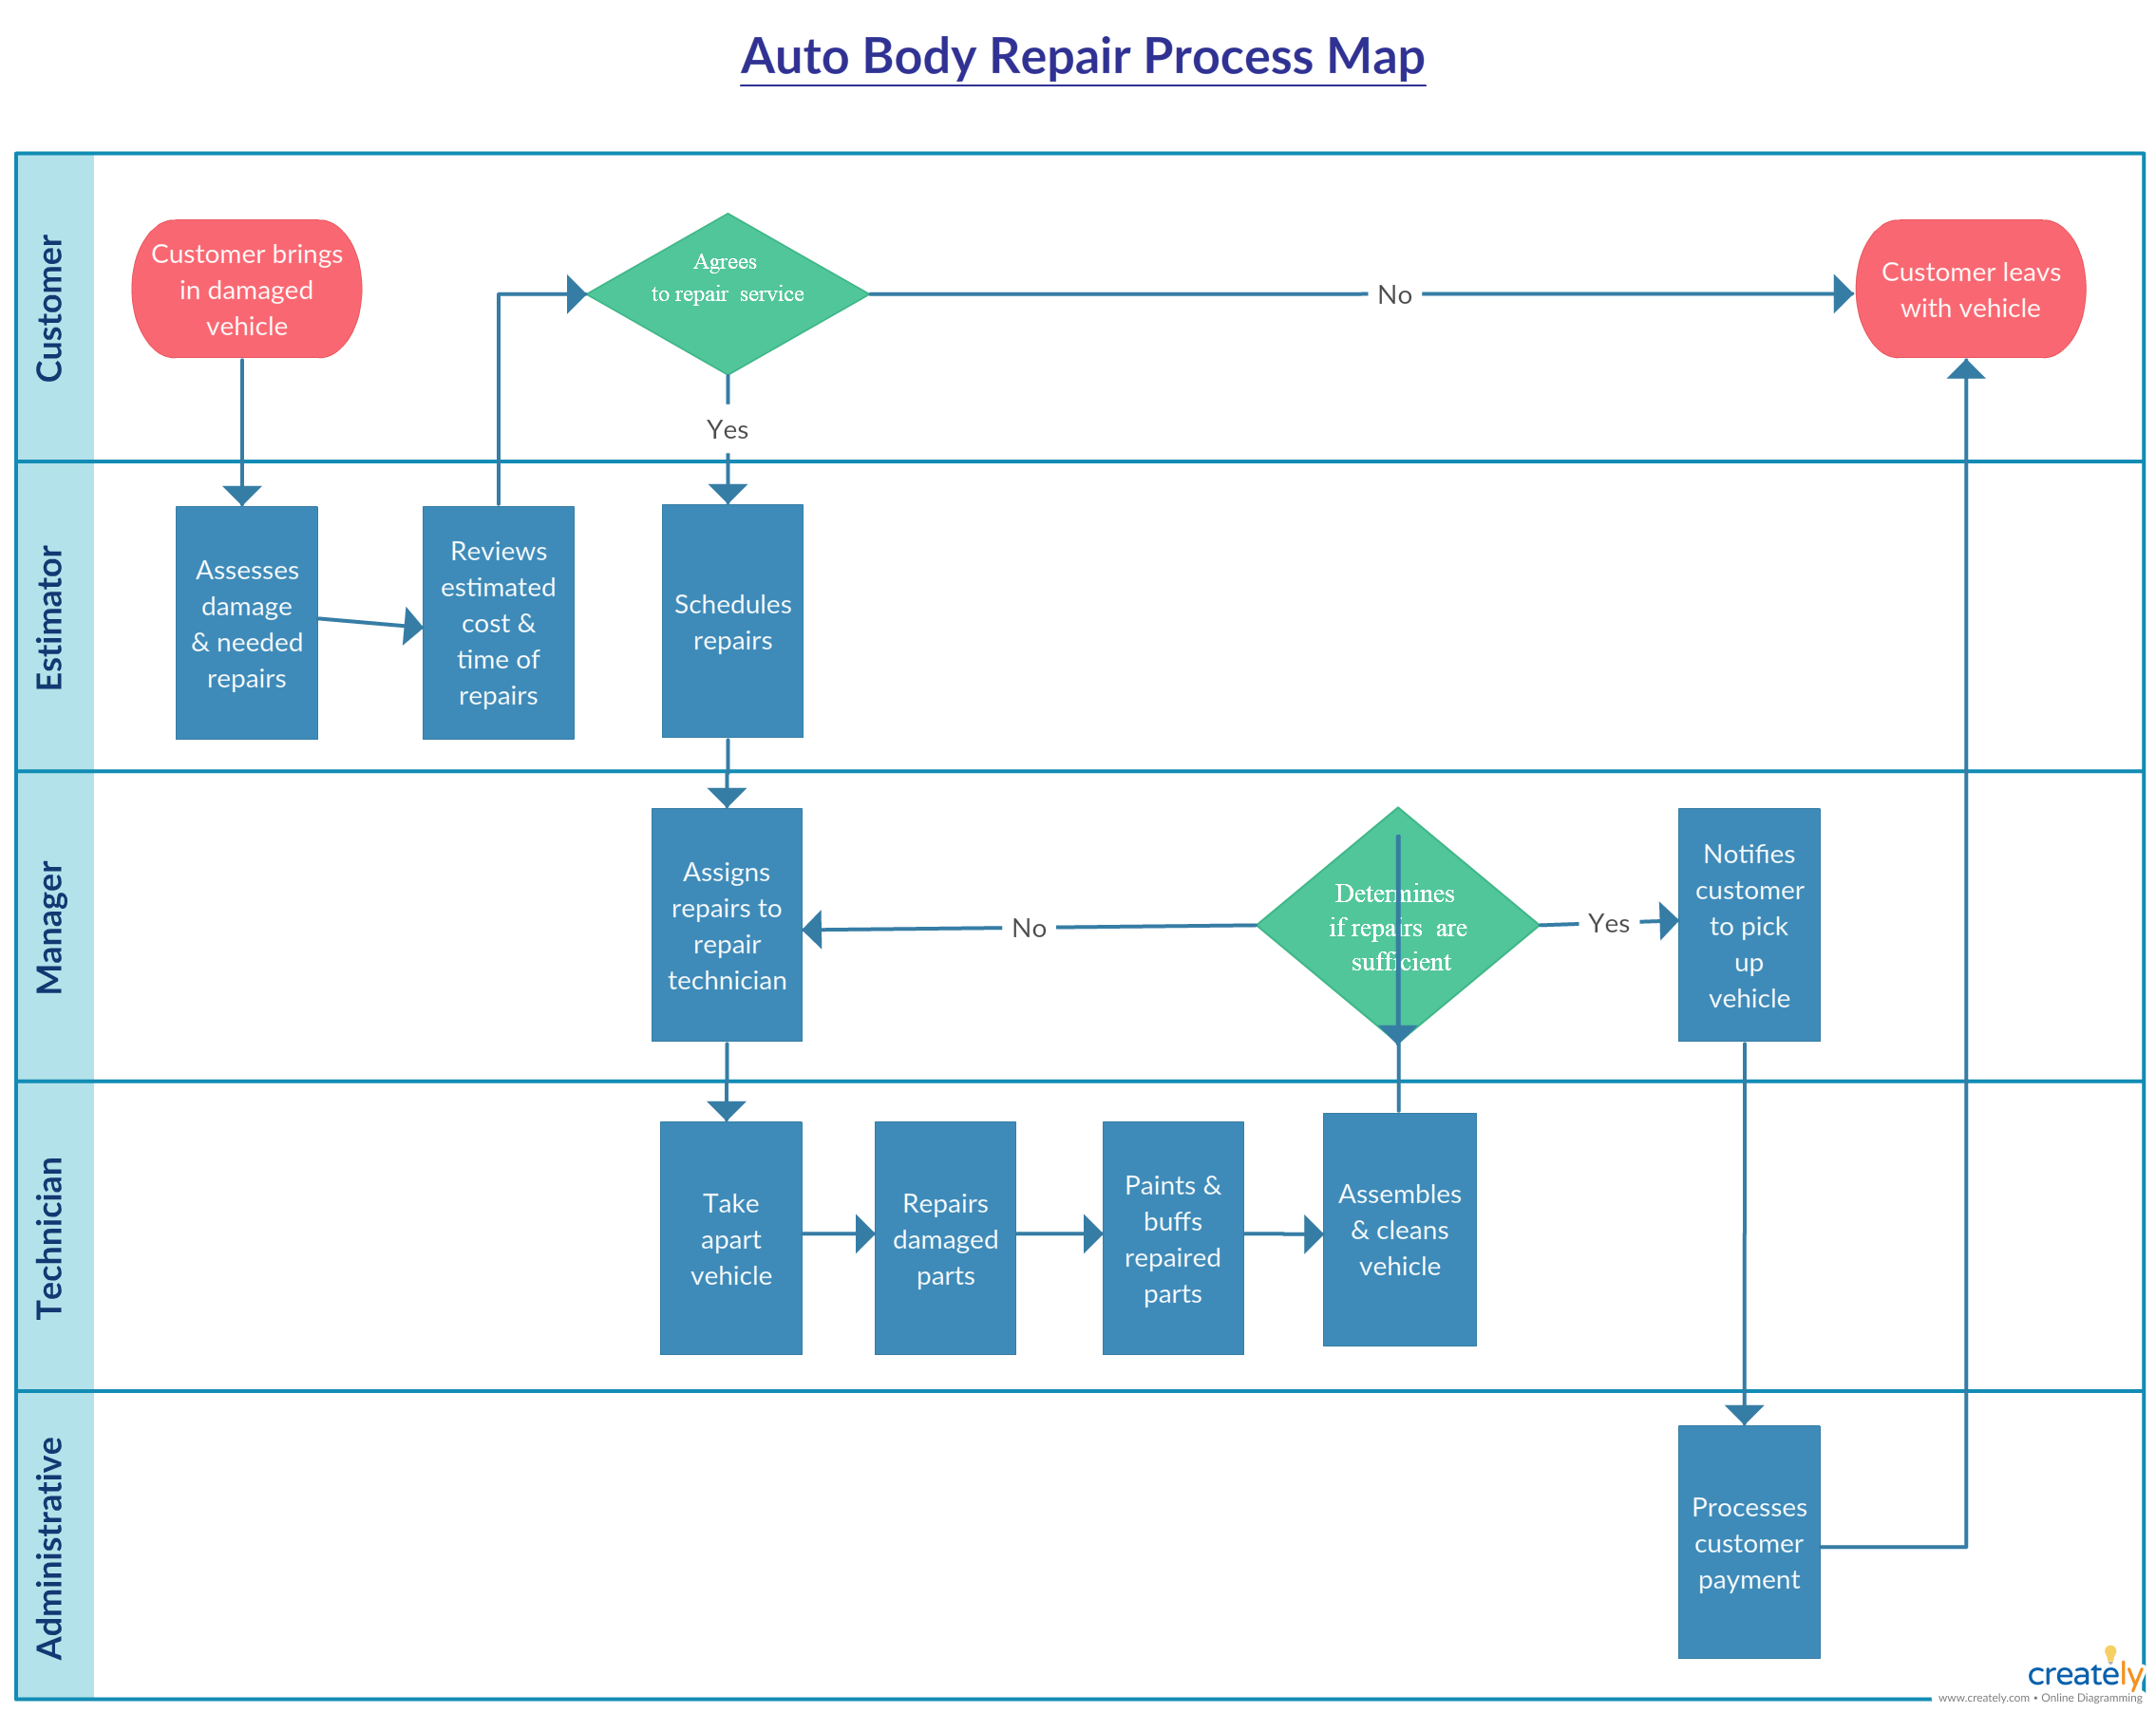 body shop repair process flowchart - body shop repair process flowchart to  map the auto body